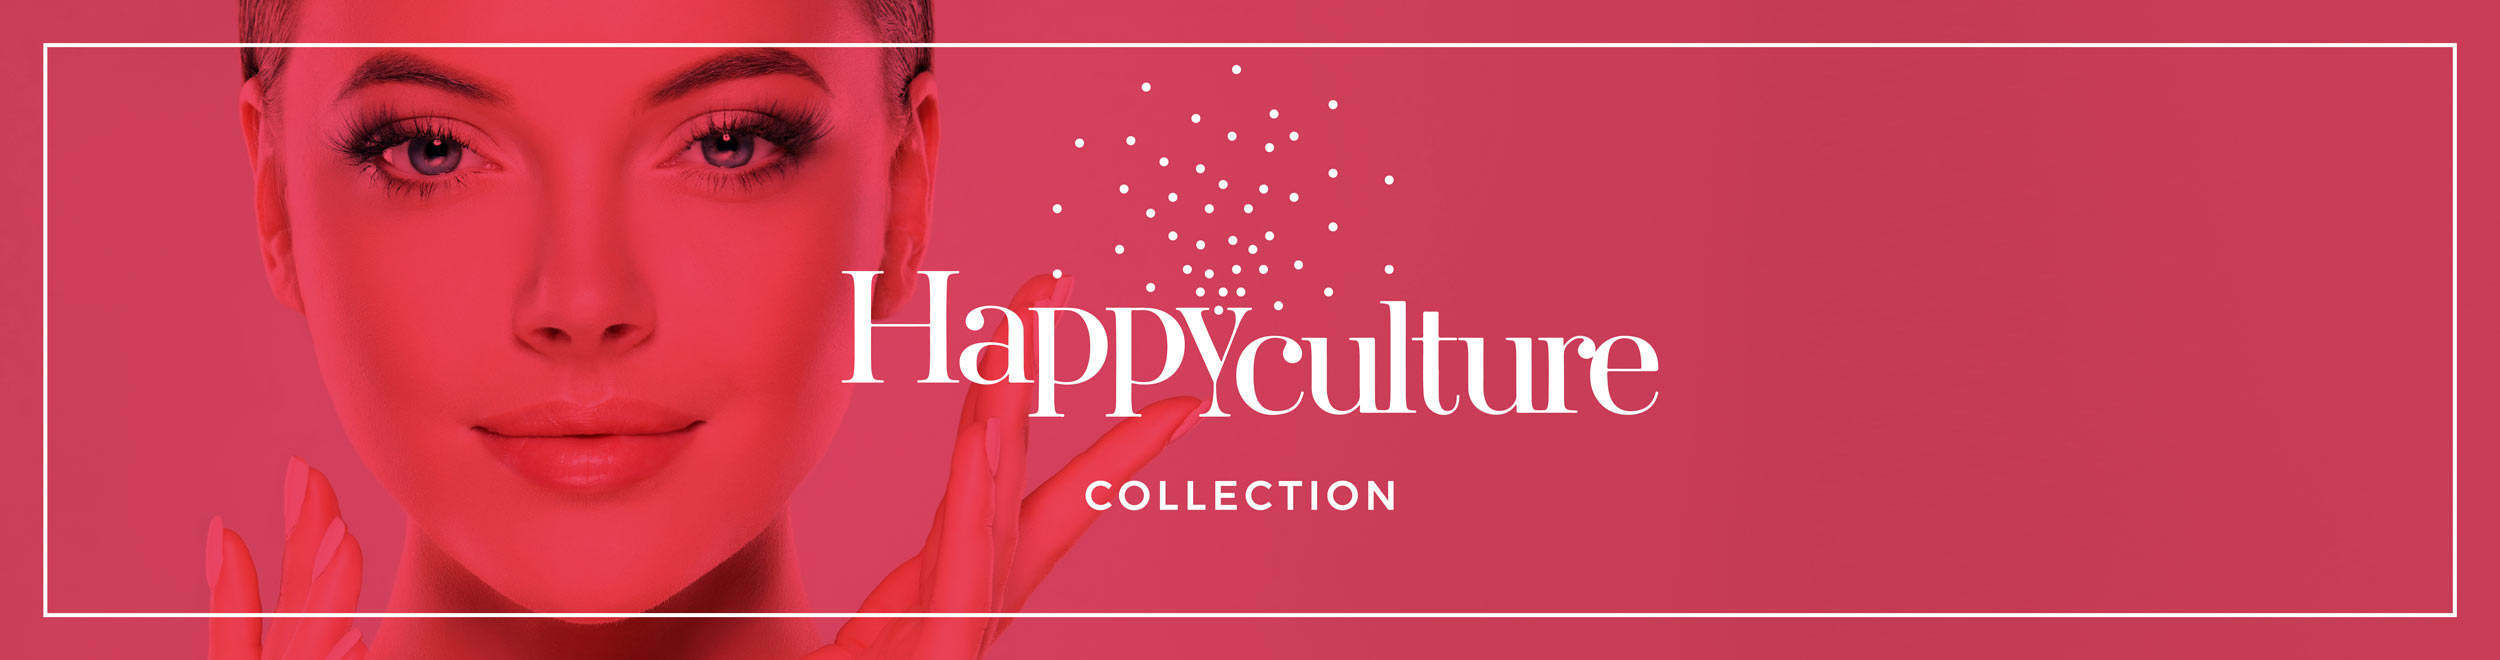 Partenariat HappyCulture - Absolu Spa